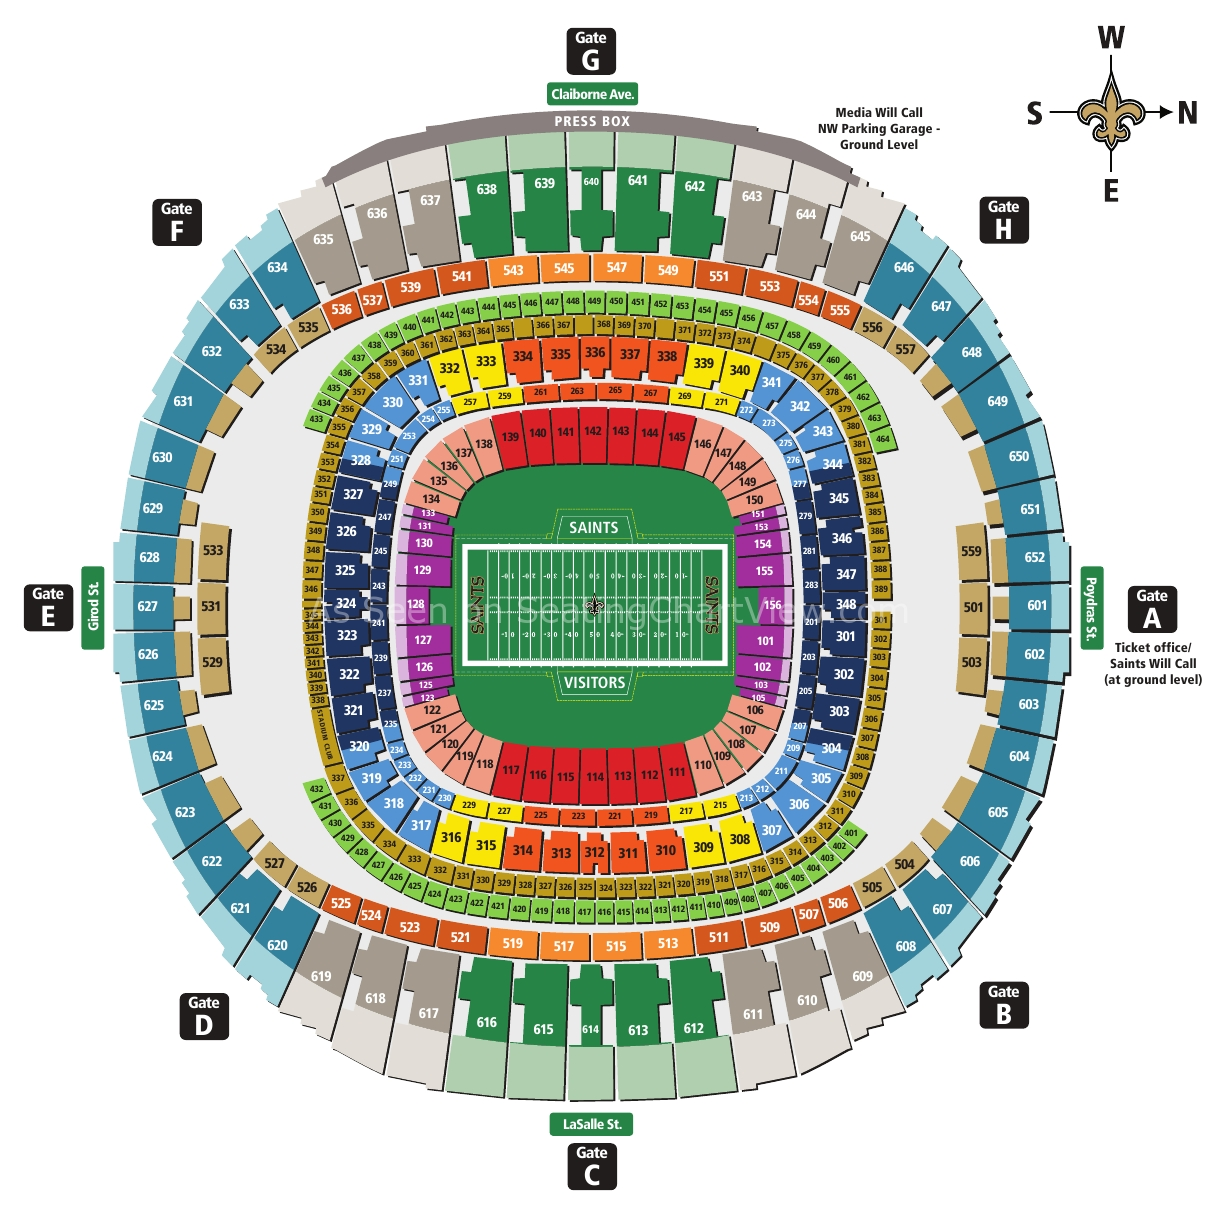 Mercedes-Benz Superdome, New Orleans La | Seating Chart View within Mercedes Benz Stadium Seating Chart For Super Bowl